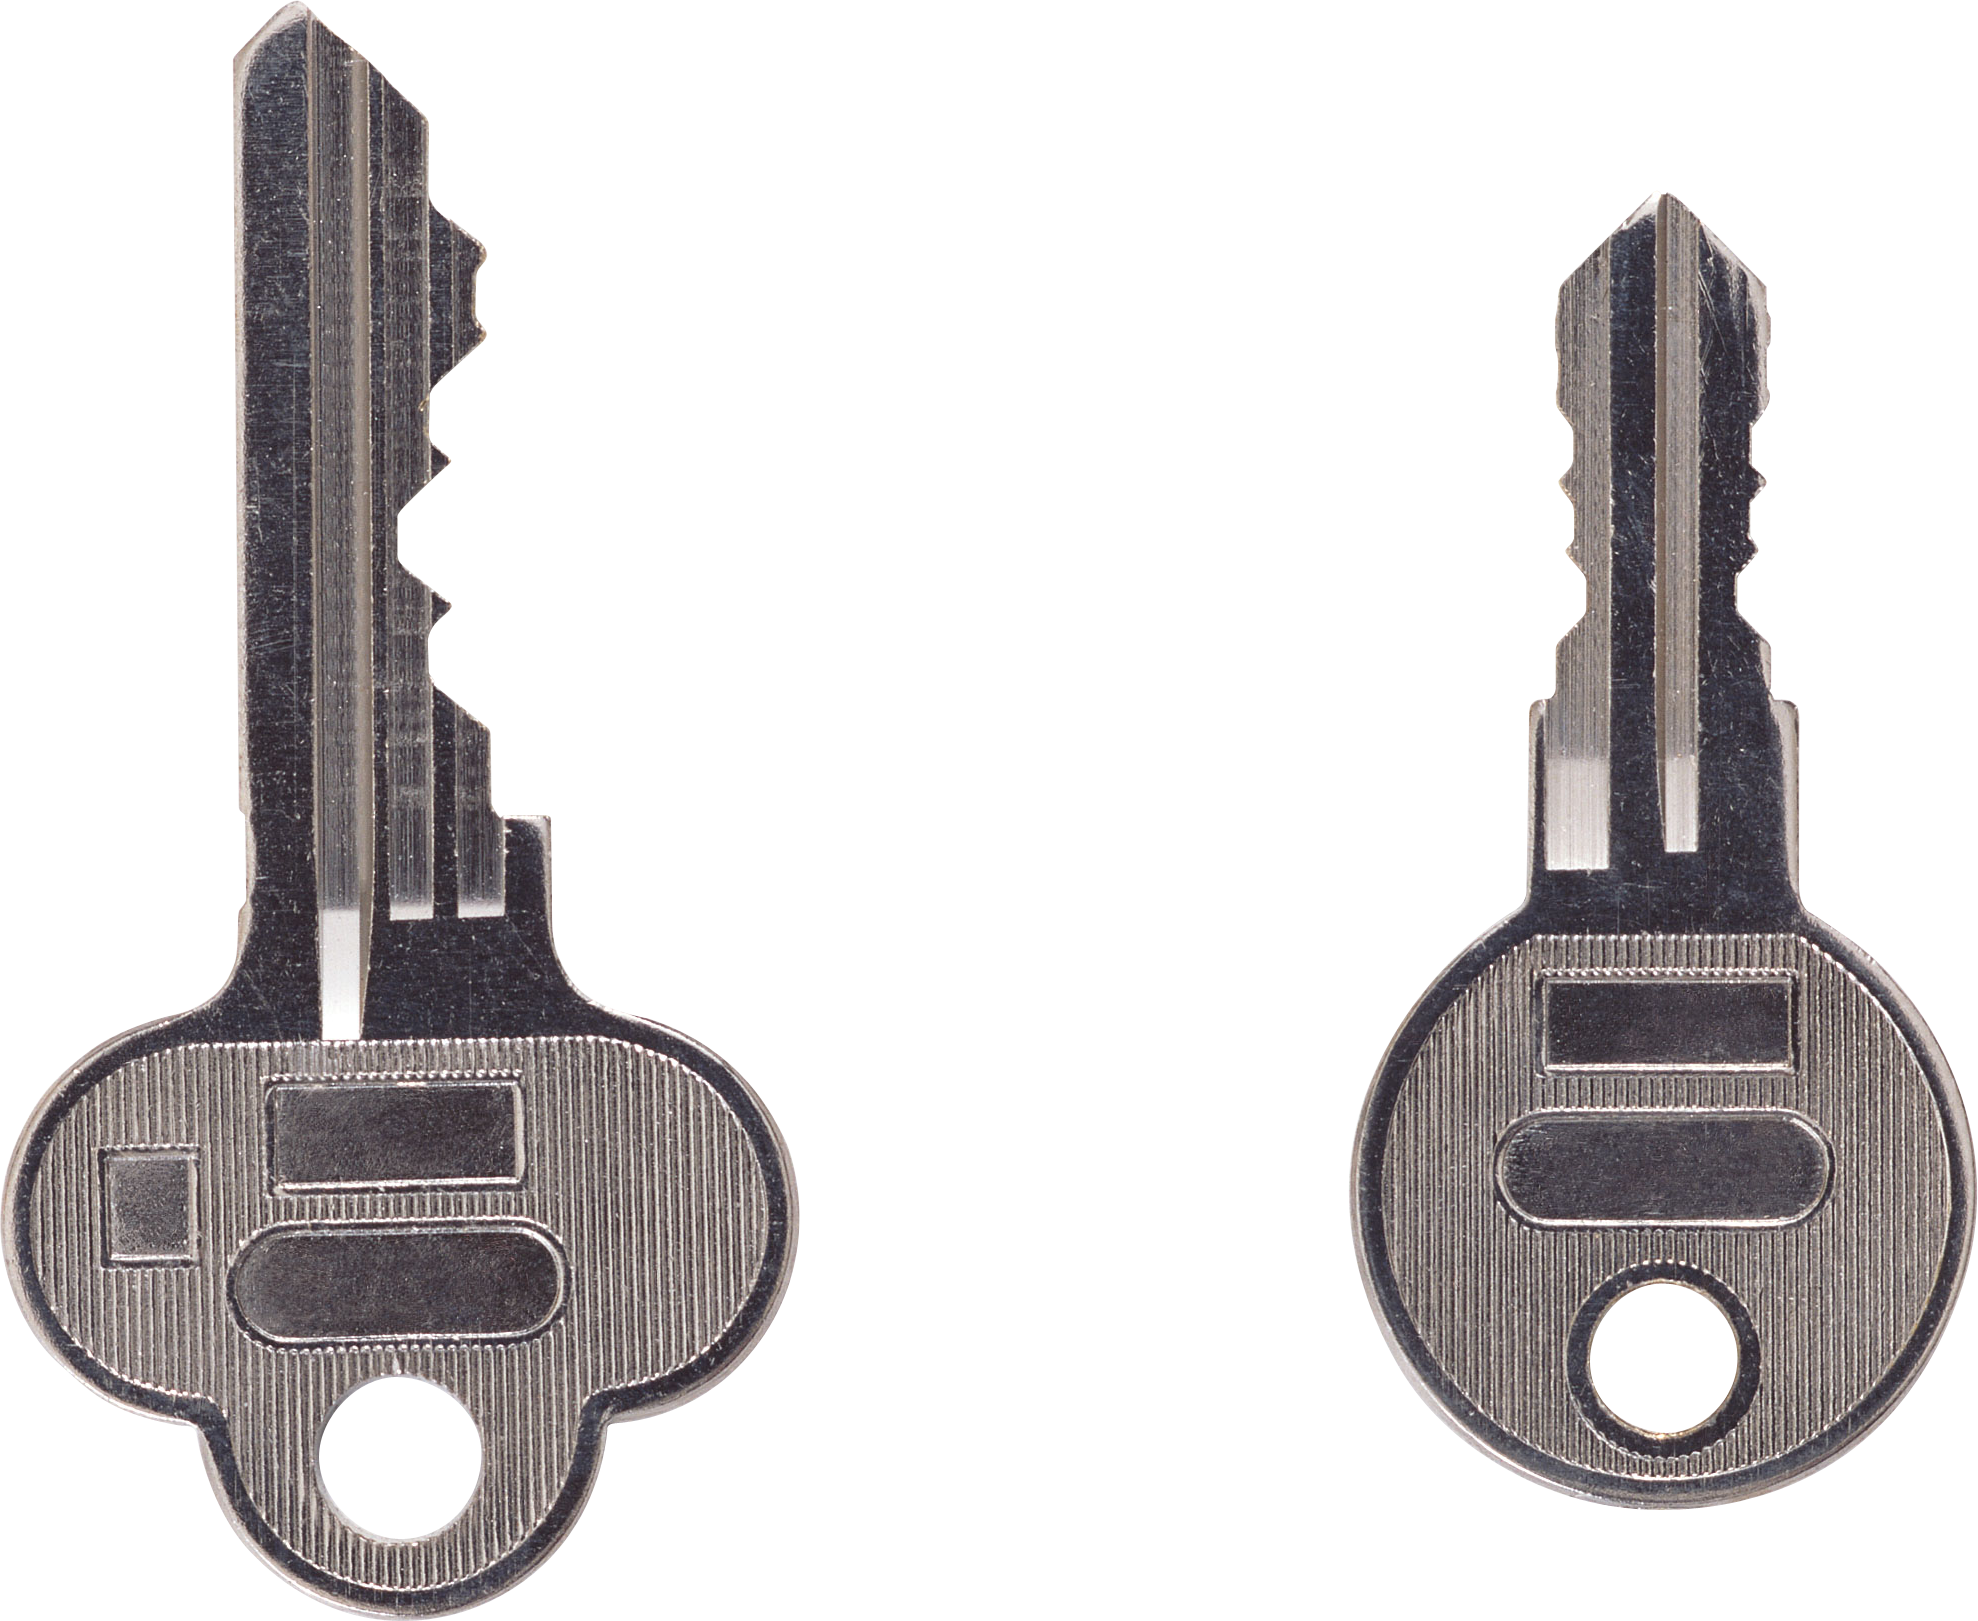 Keys clipart two key. Photo transparentpng